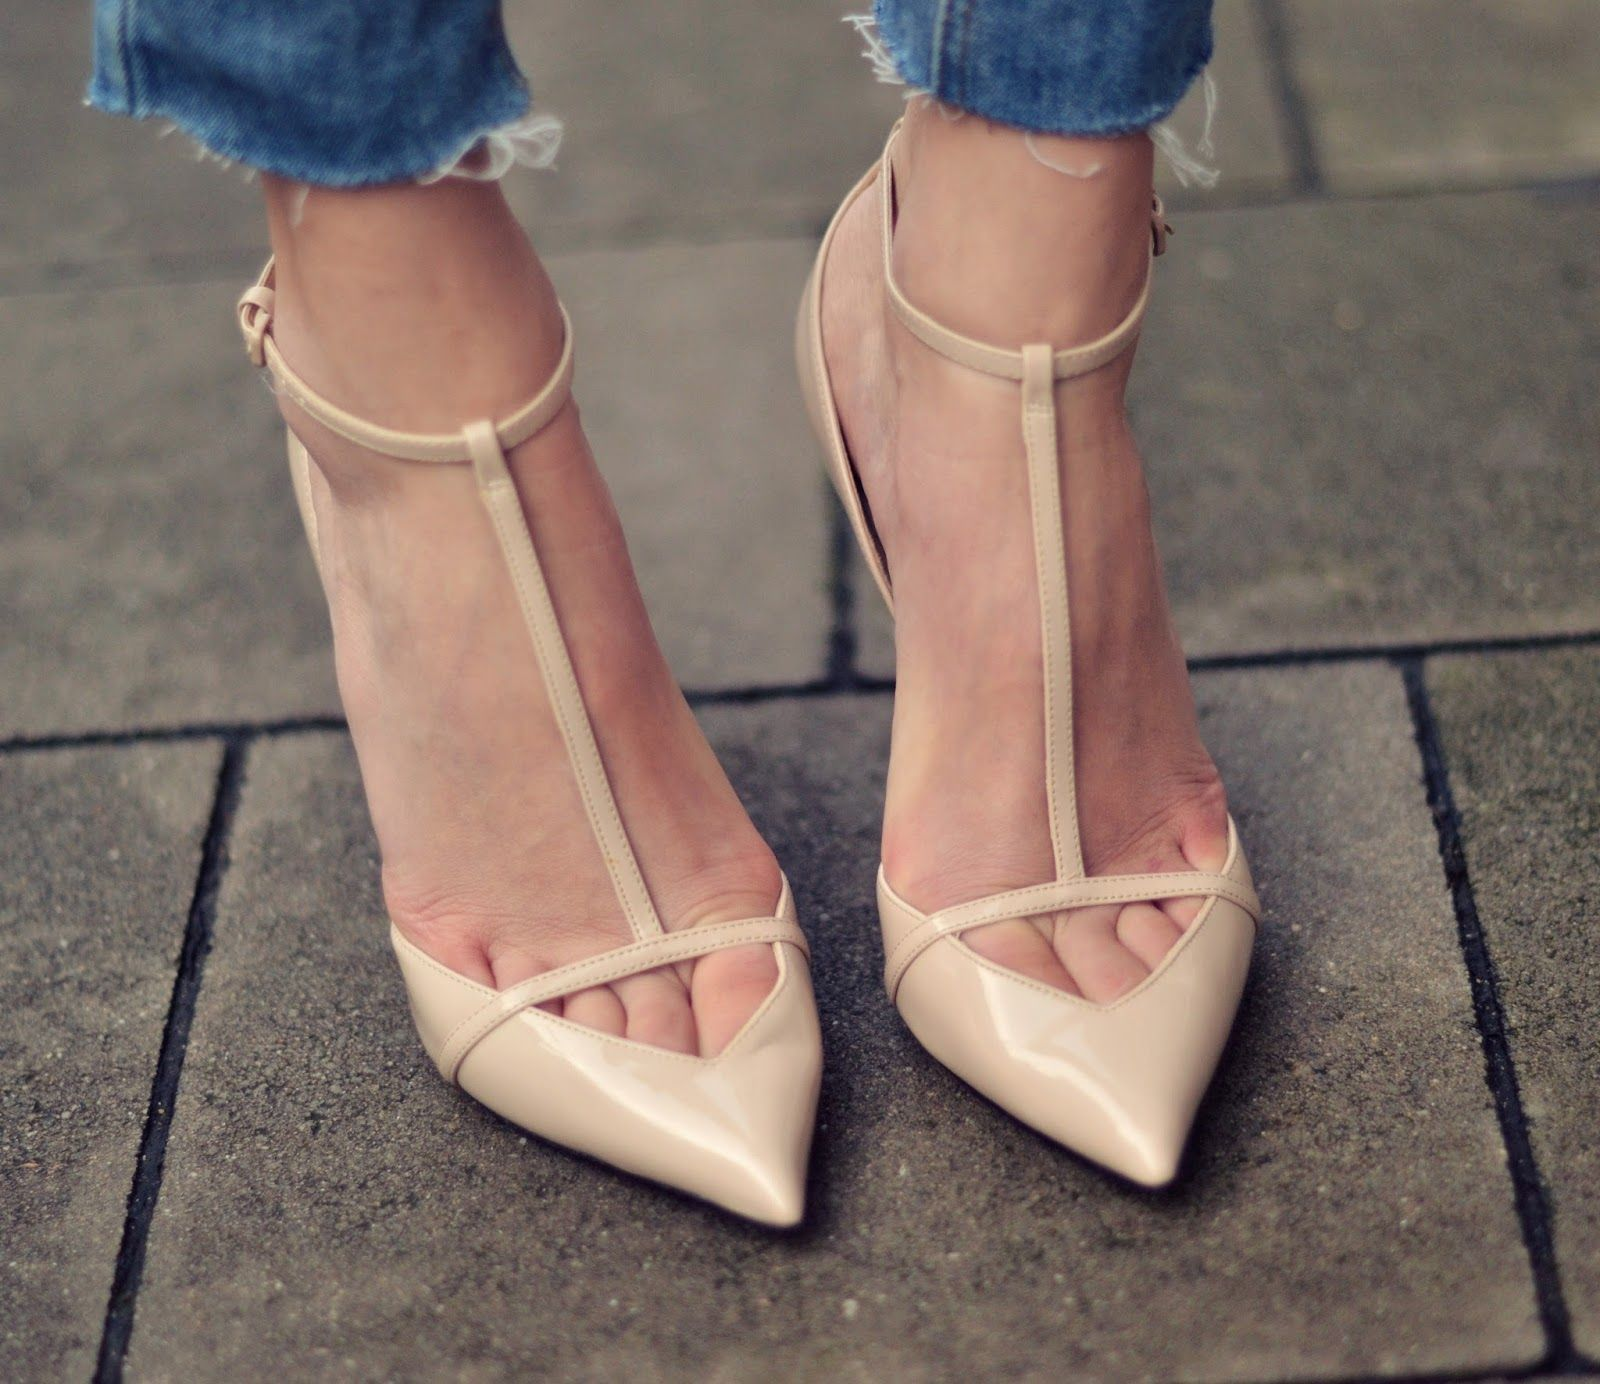 I could not wear these shoes but they are some of the prettiest shoes I've ever seen.